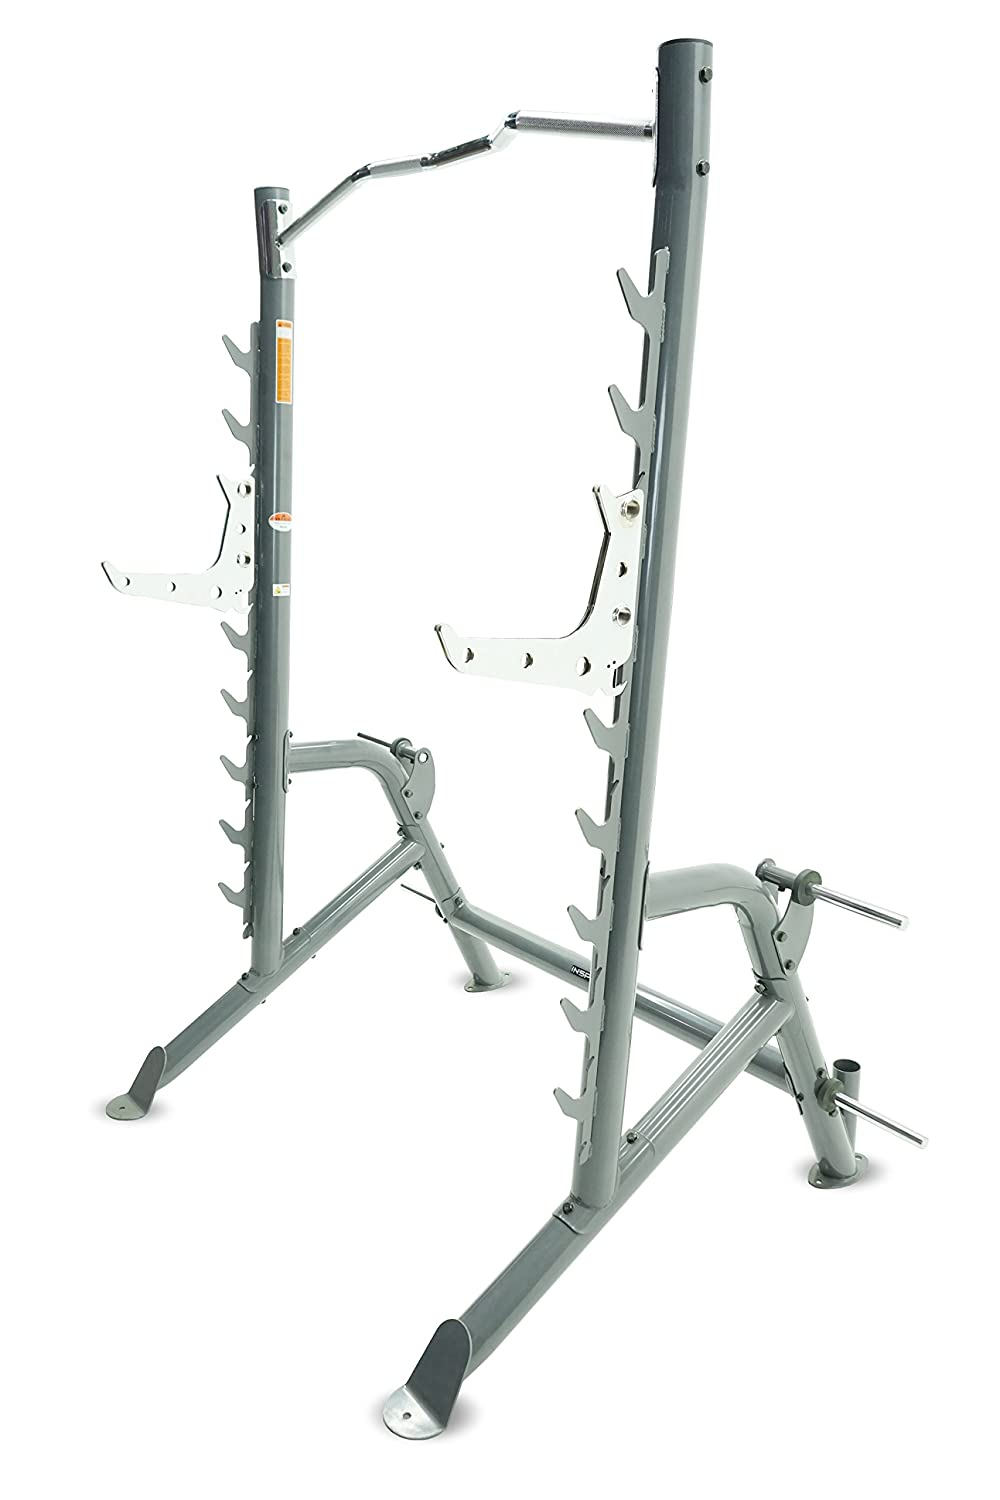 is the inspire fitness squat rack any good